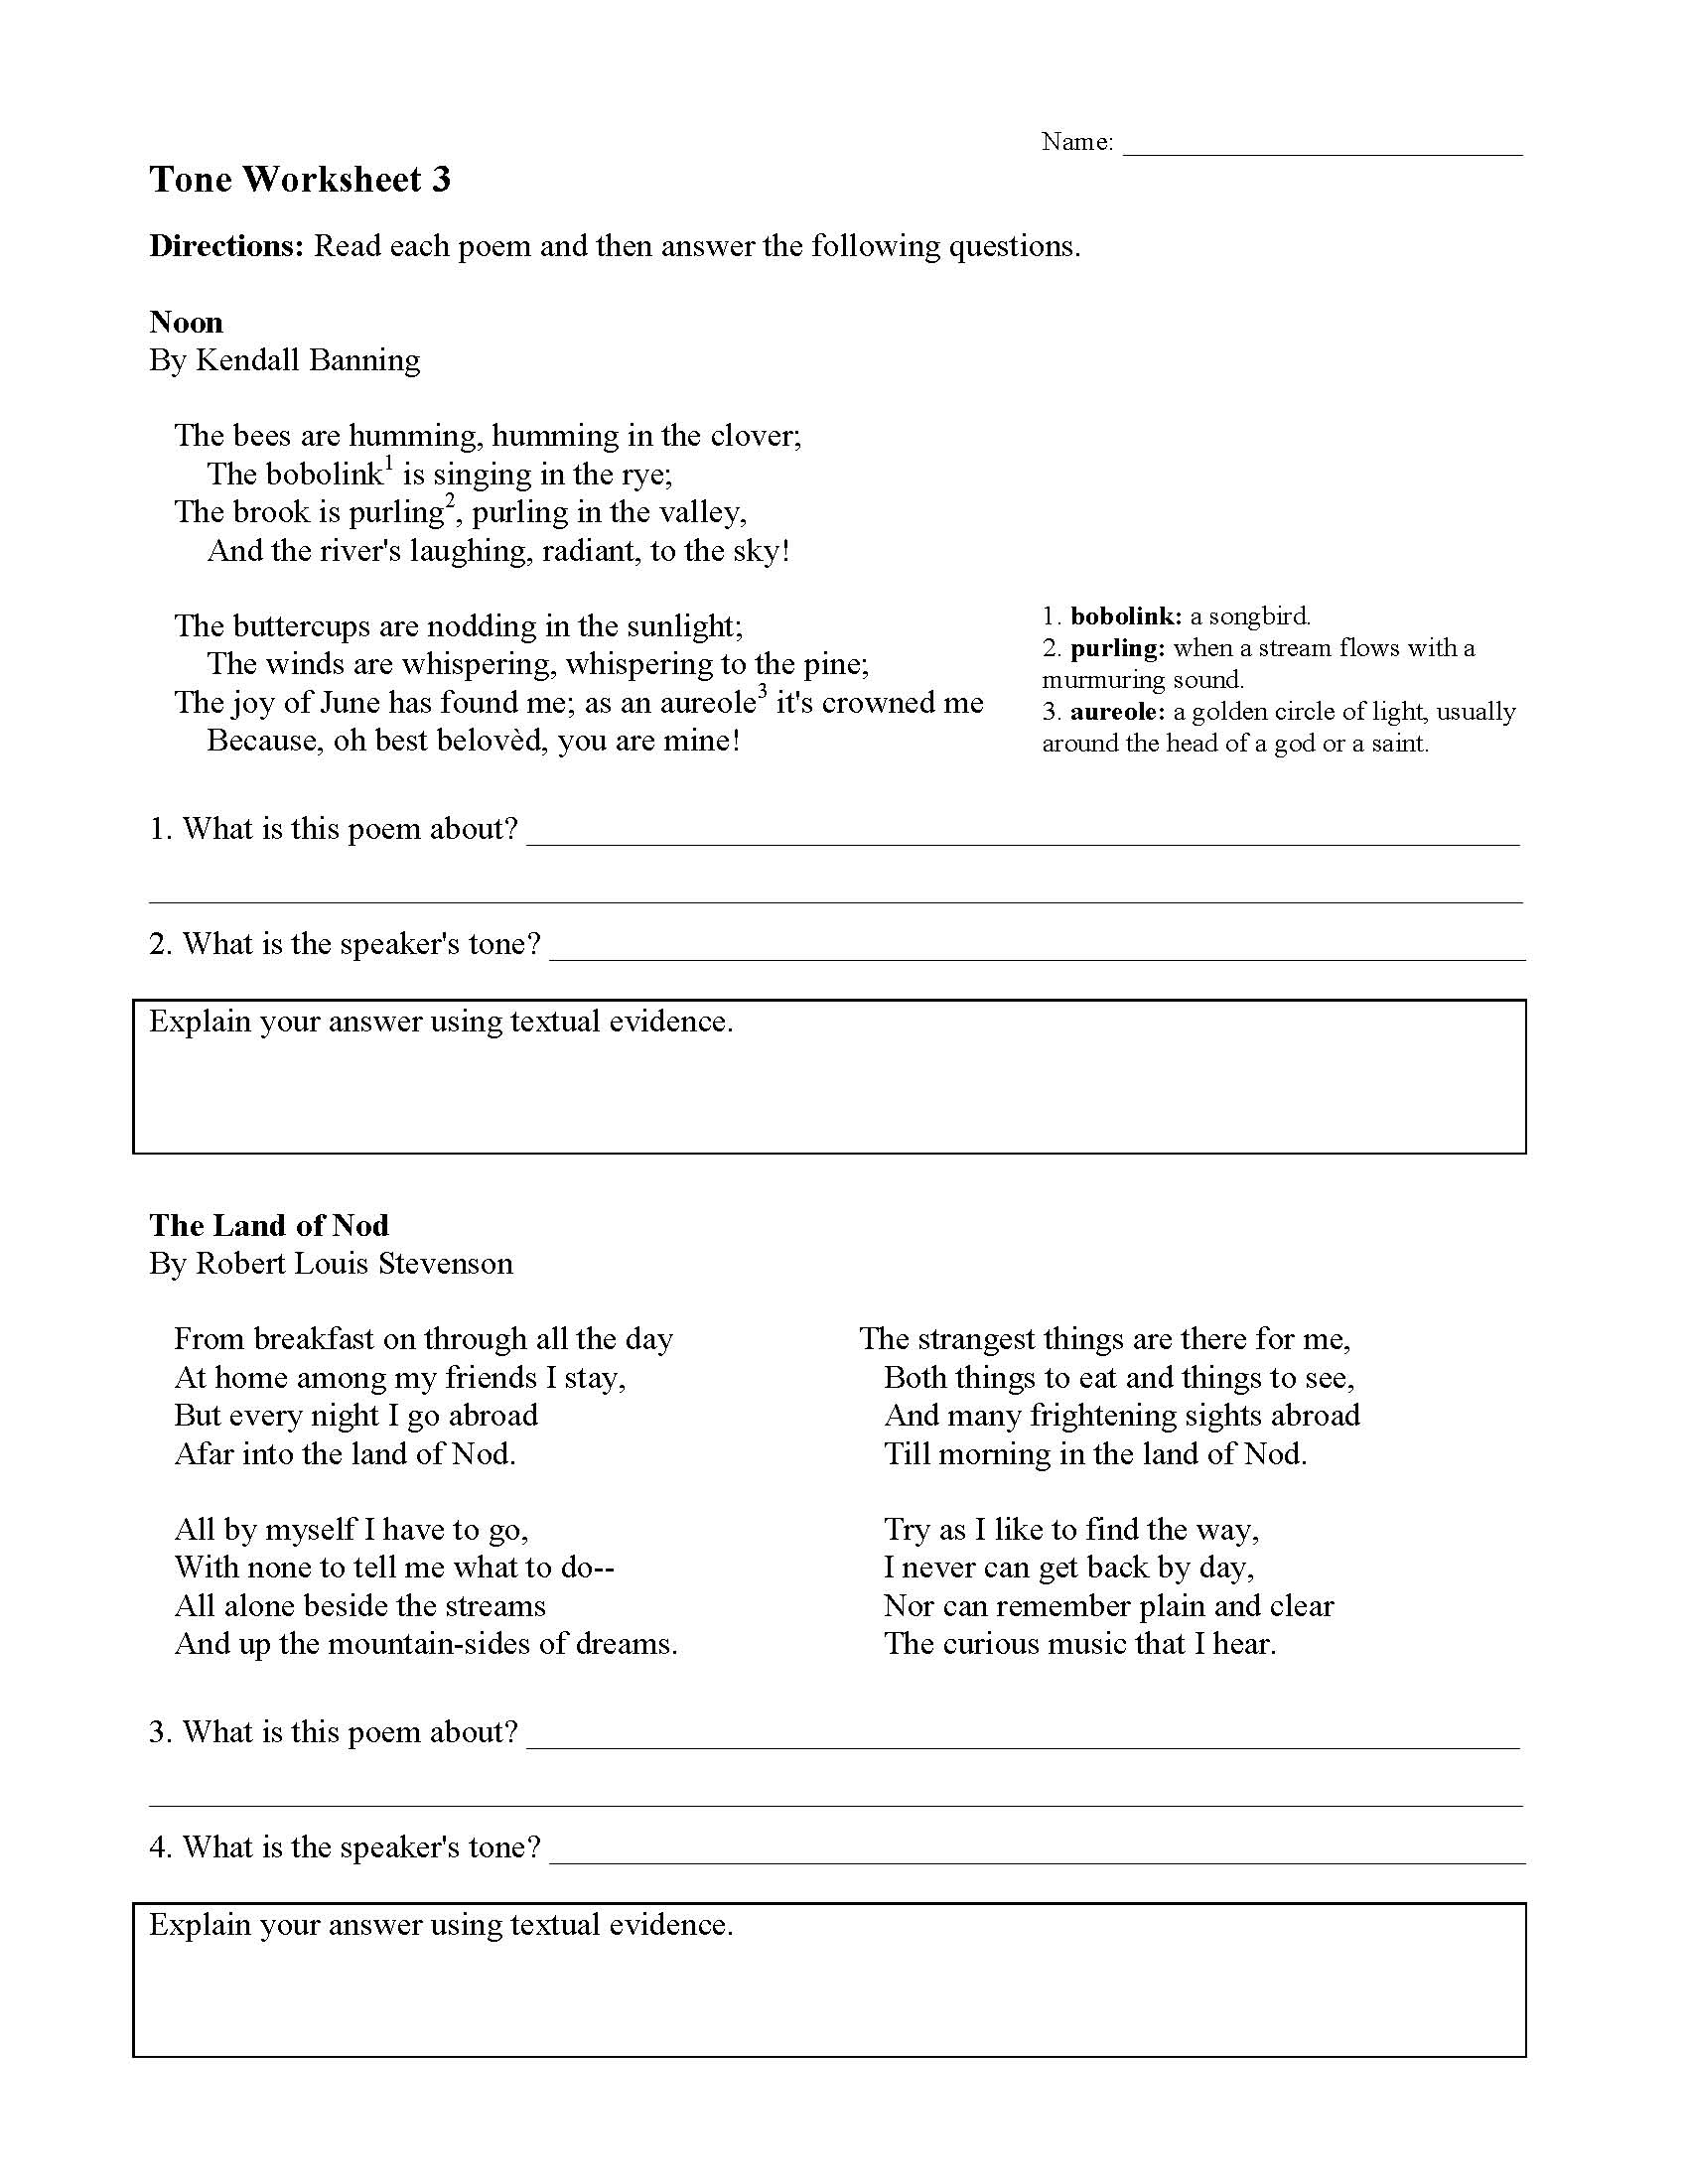 This is a preview image of Tone Worksheet 3. Click on it to enlarge it or view the source file.